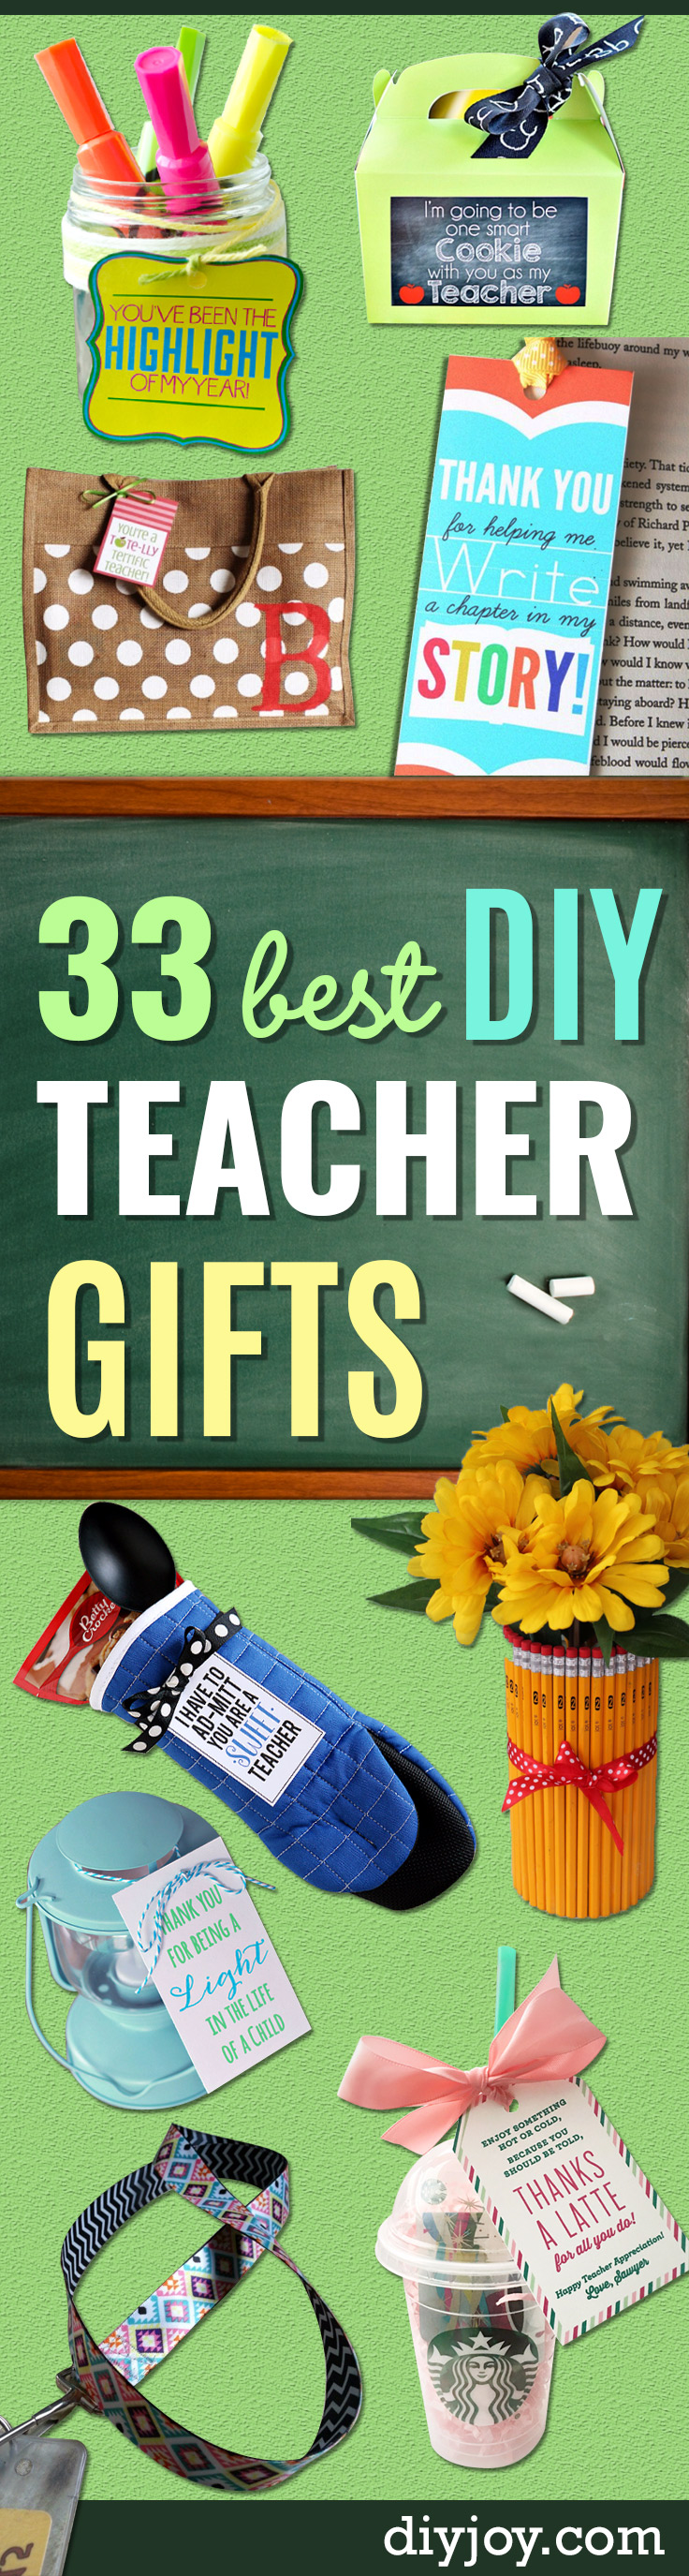 DIY Teacher Gifts - Cheap and Easy Presents and DIY Gift Ideas for Teachers at Christmas, End of Year, First Day and Birthday - Teacher Appreciation Gifts and Crafts - Cute Mason Jar Ideas and Thoughtful, Unique Gifts from Kids